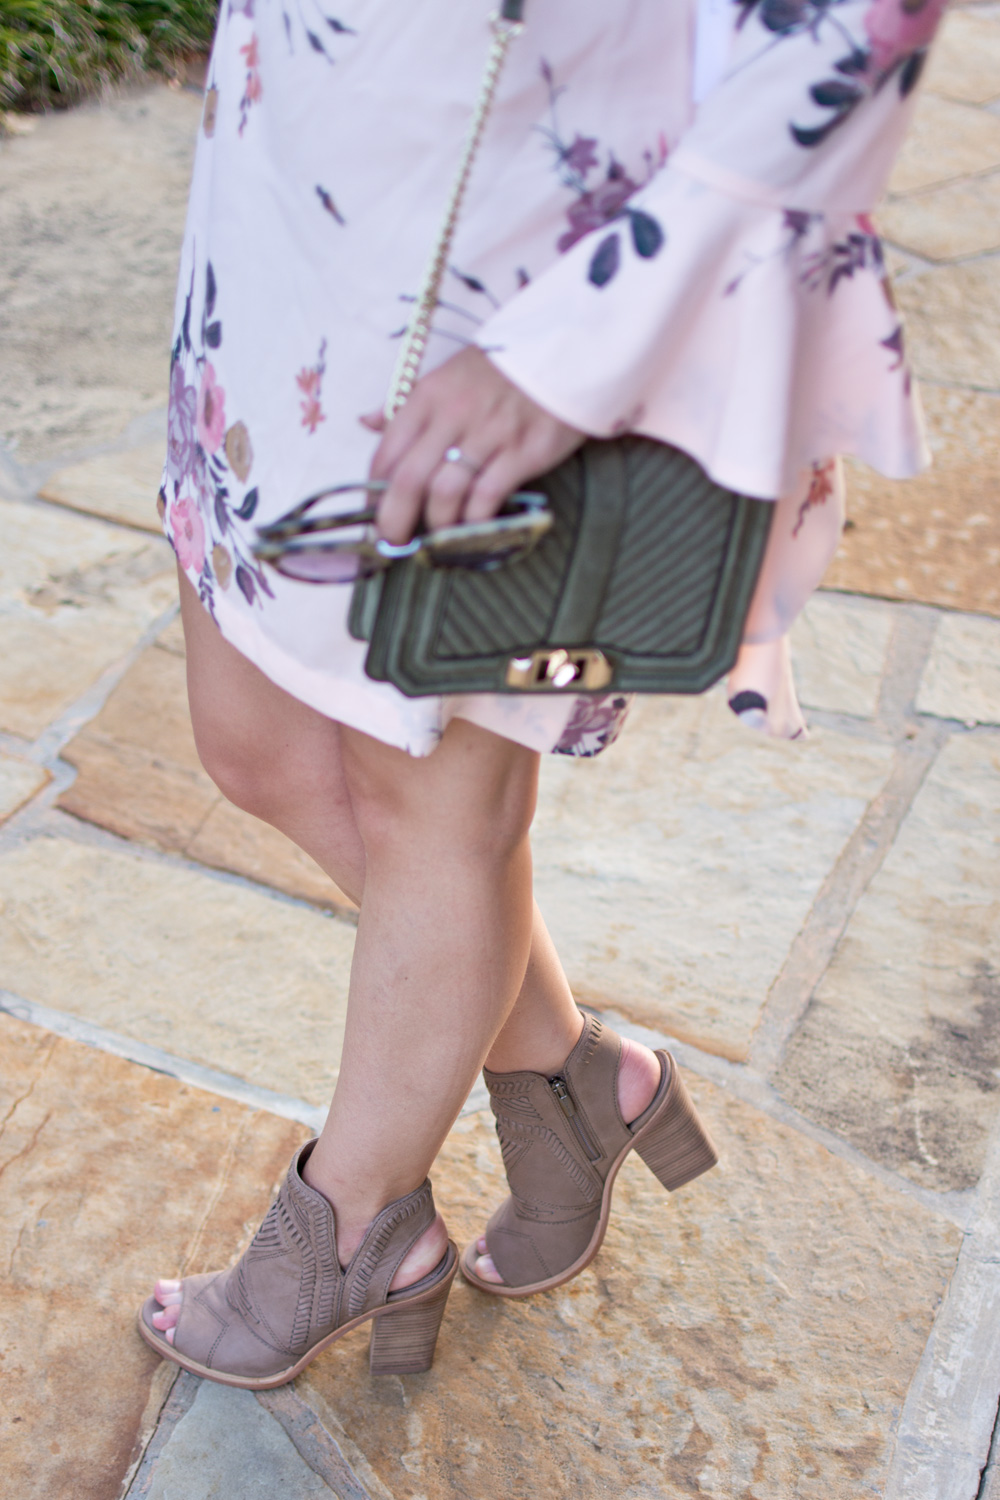 Vince Camuto booties styled with a green rebecca Minkoff bag and pink floral dress from the nordstrom anniversary sale